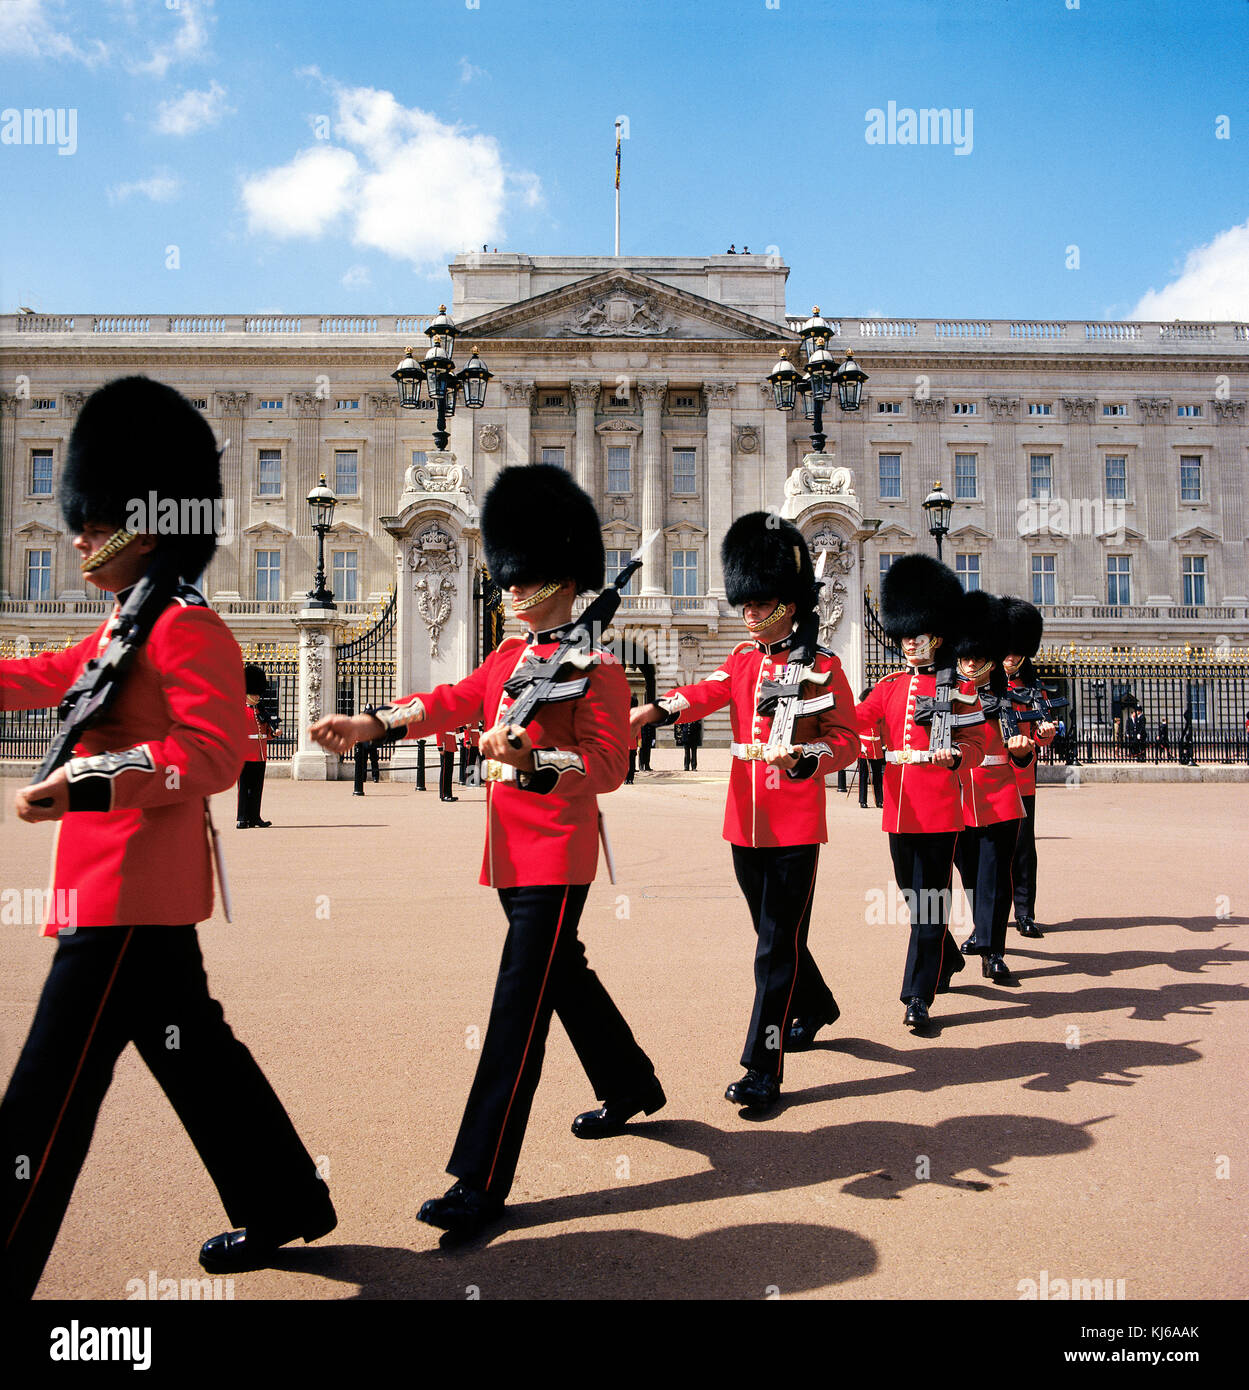 Le palais de Buckingham Grenadier Guards Londres Photo Stock